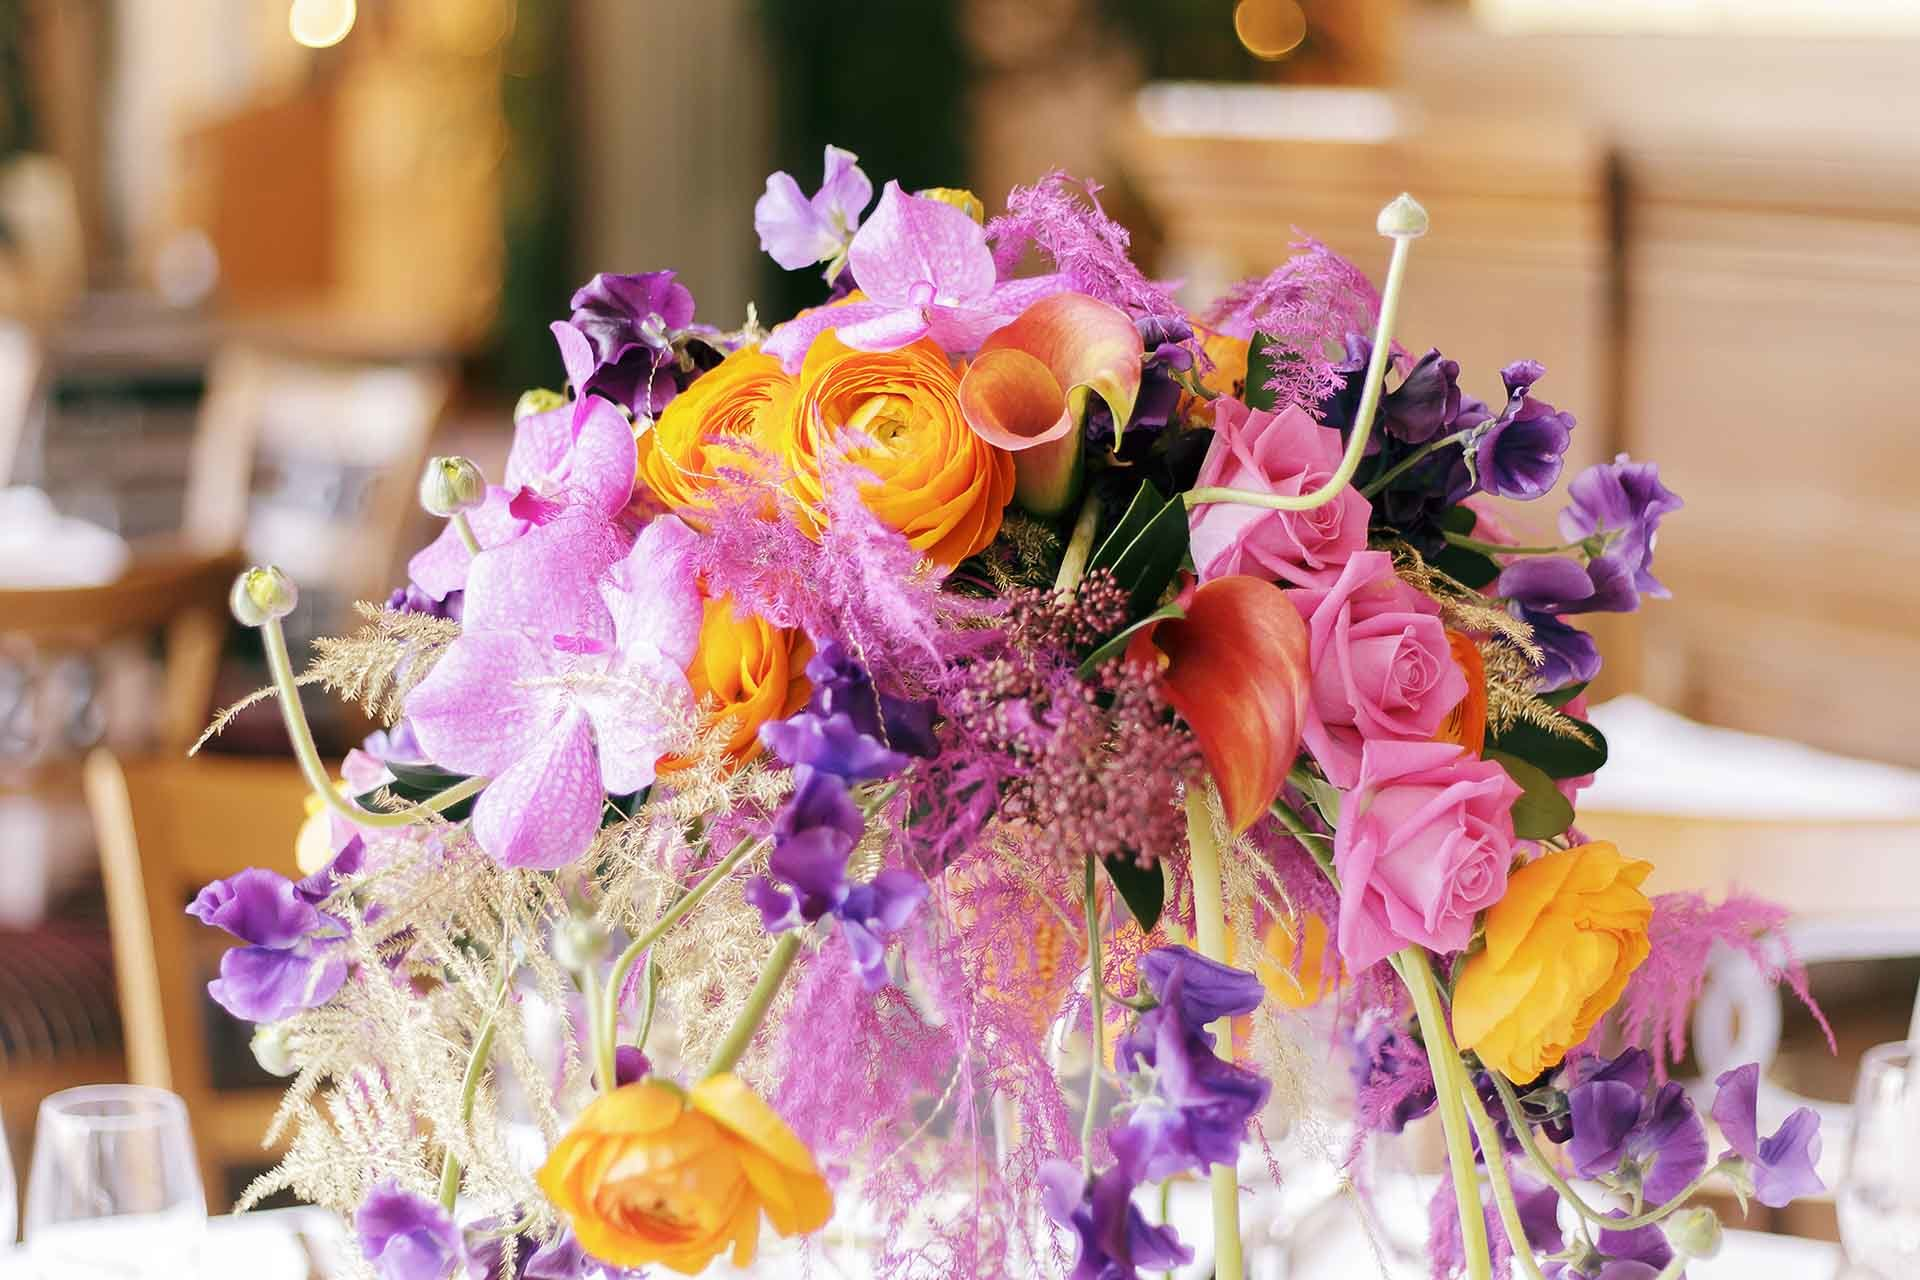 A creative and balanced floral composition